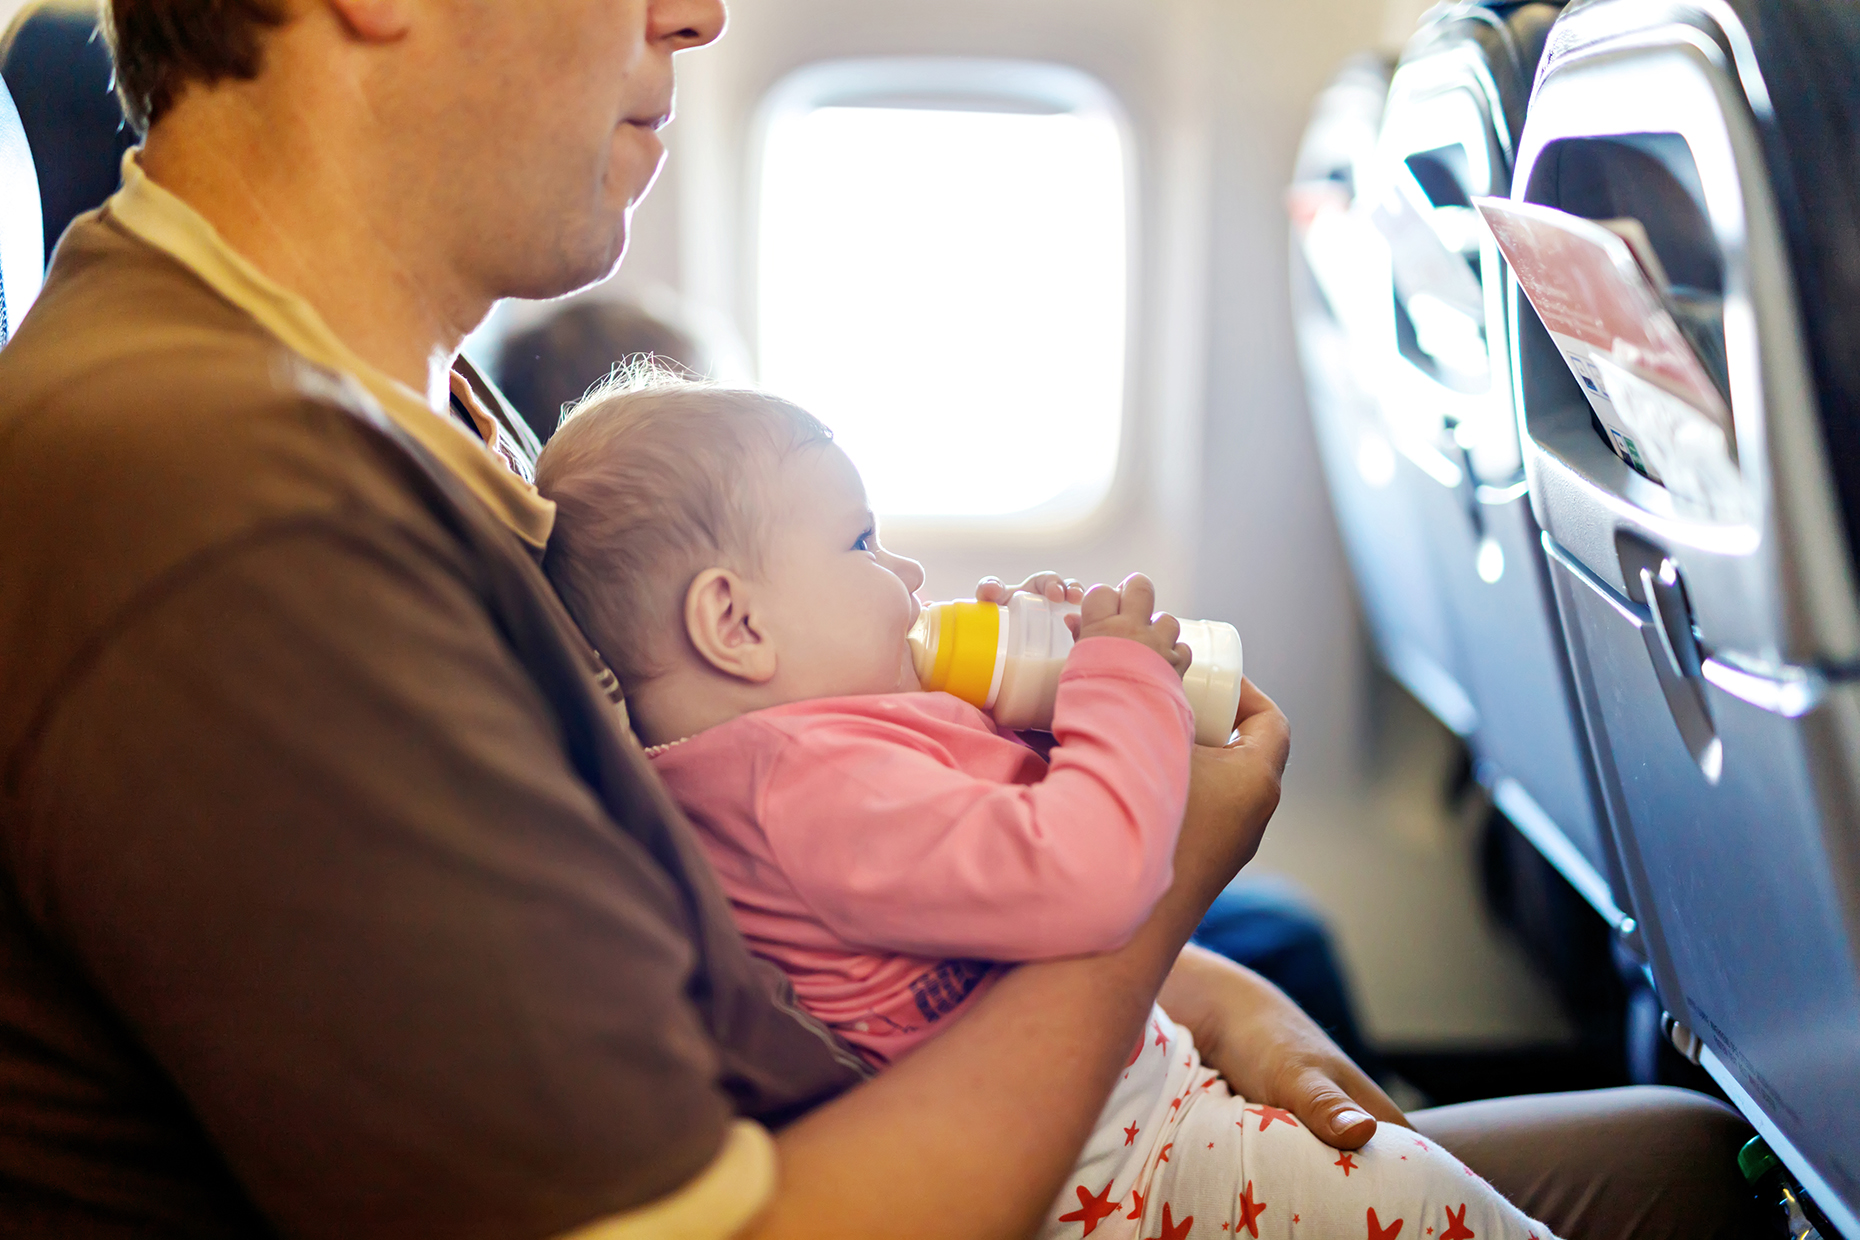 Father holding baby on a plane